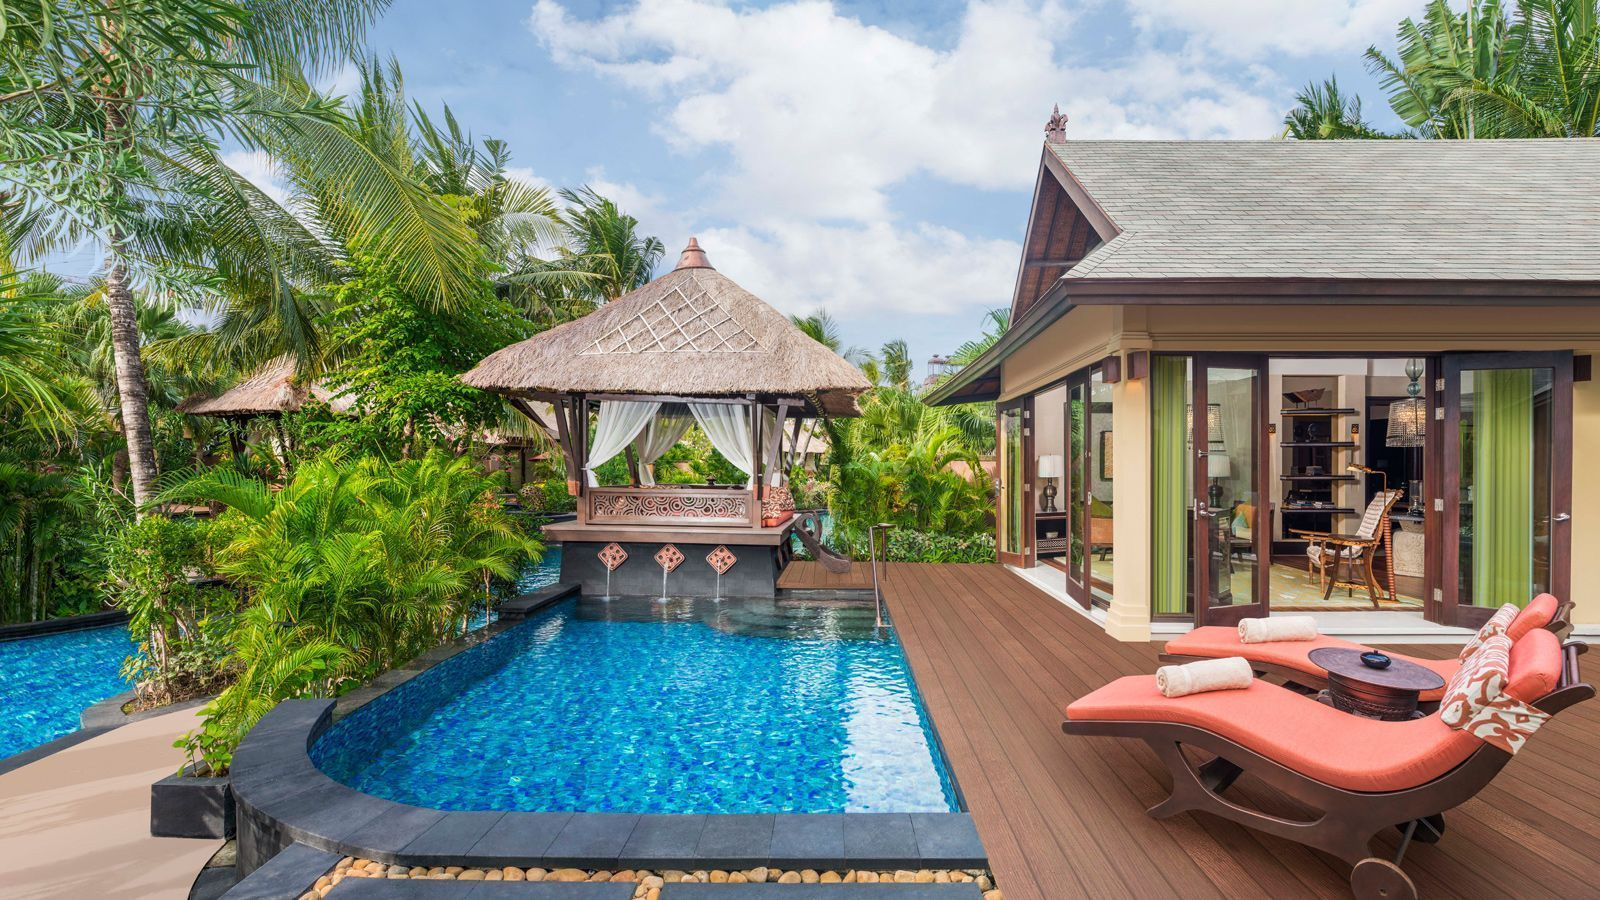 Lagoon Villa at The St. Regis Bali Resort